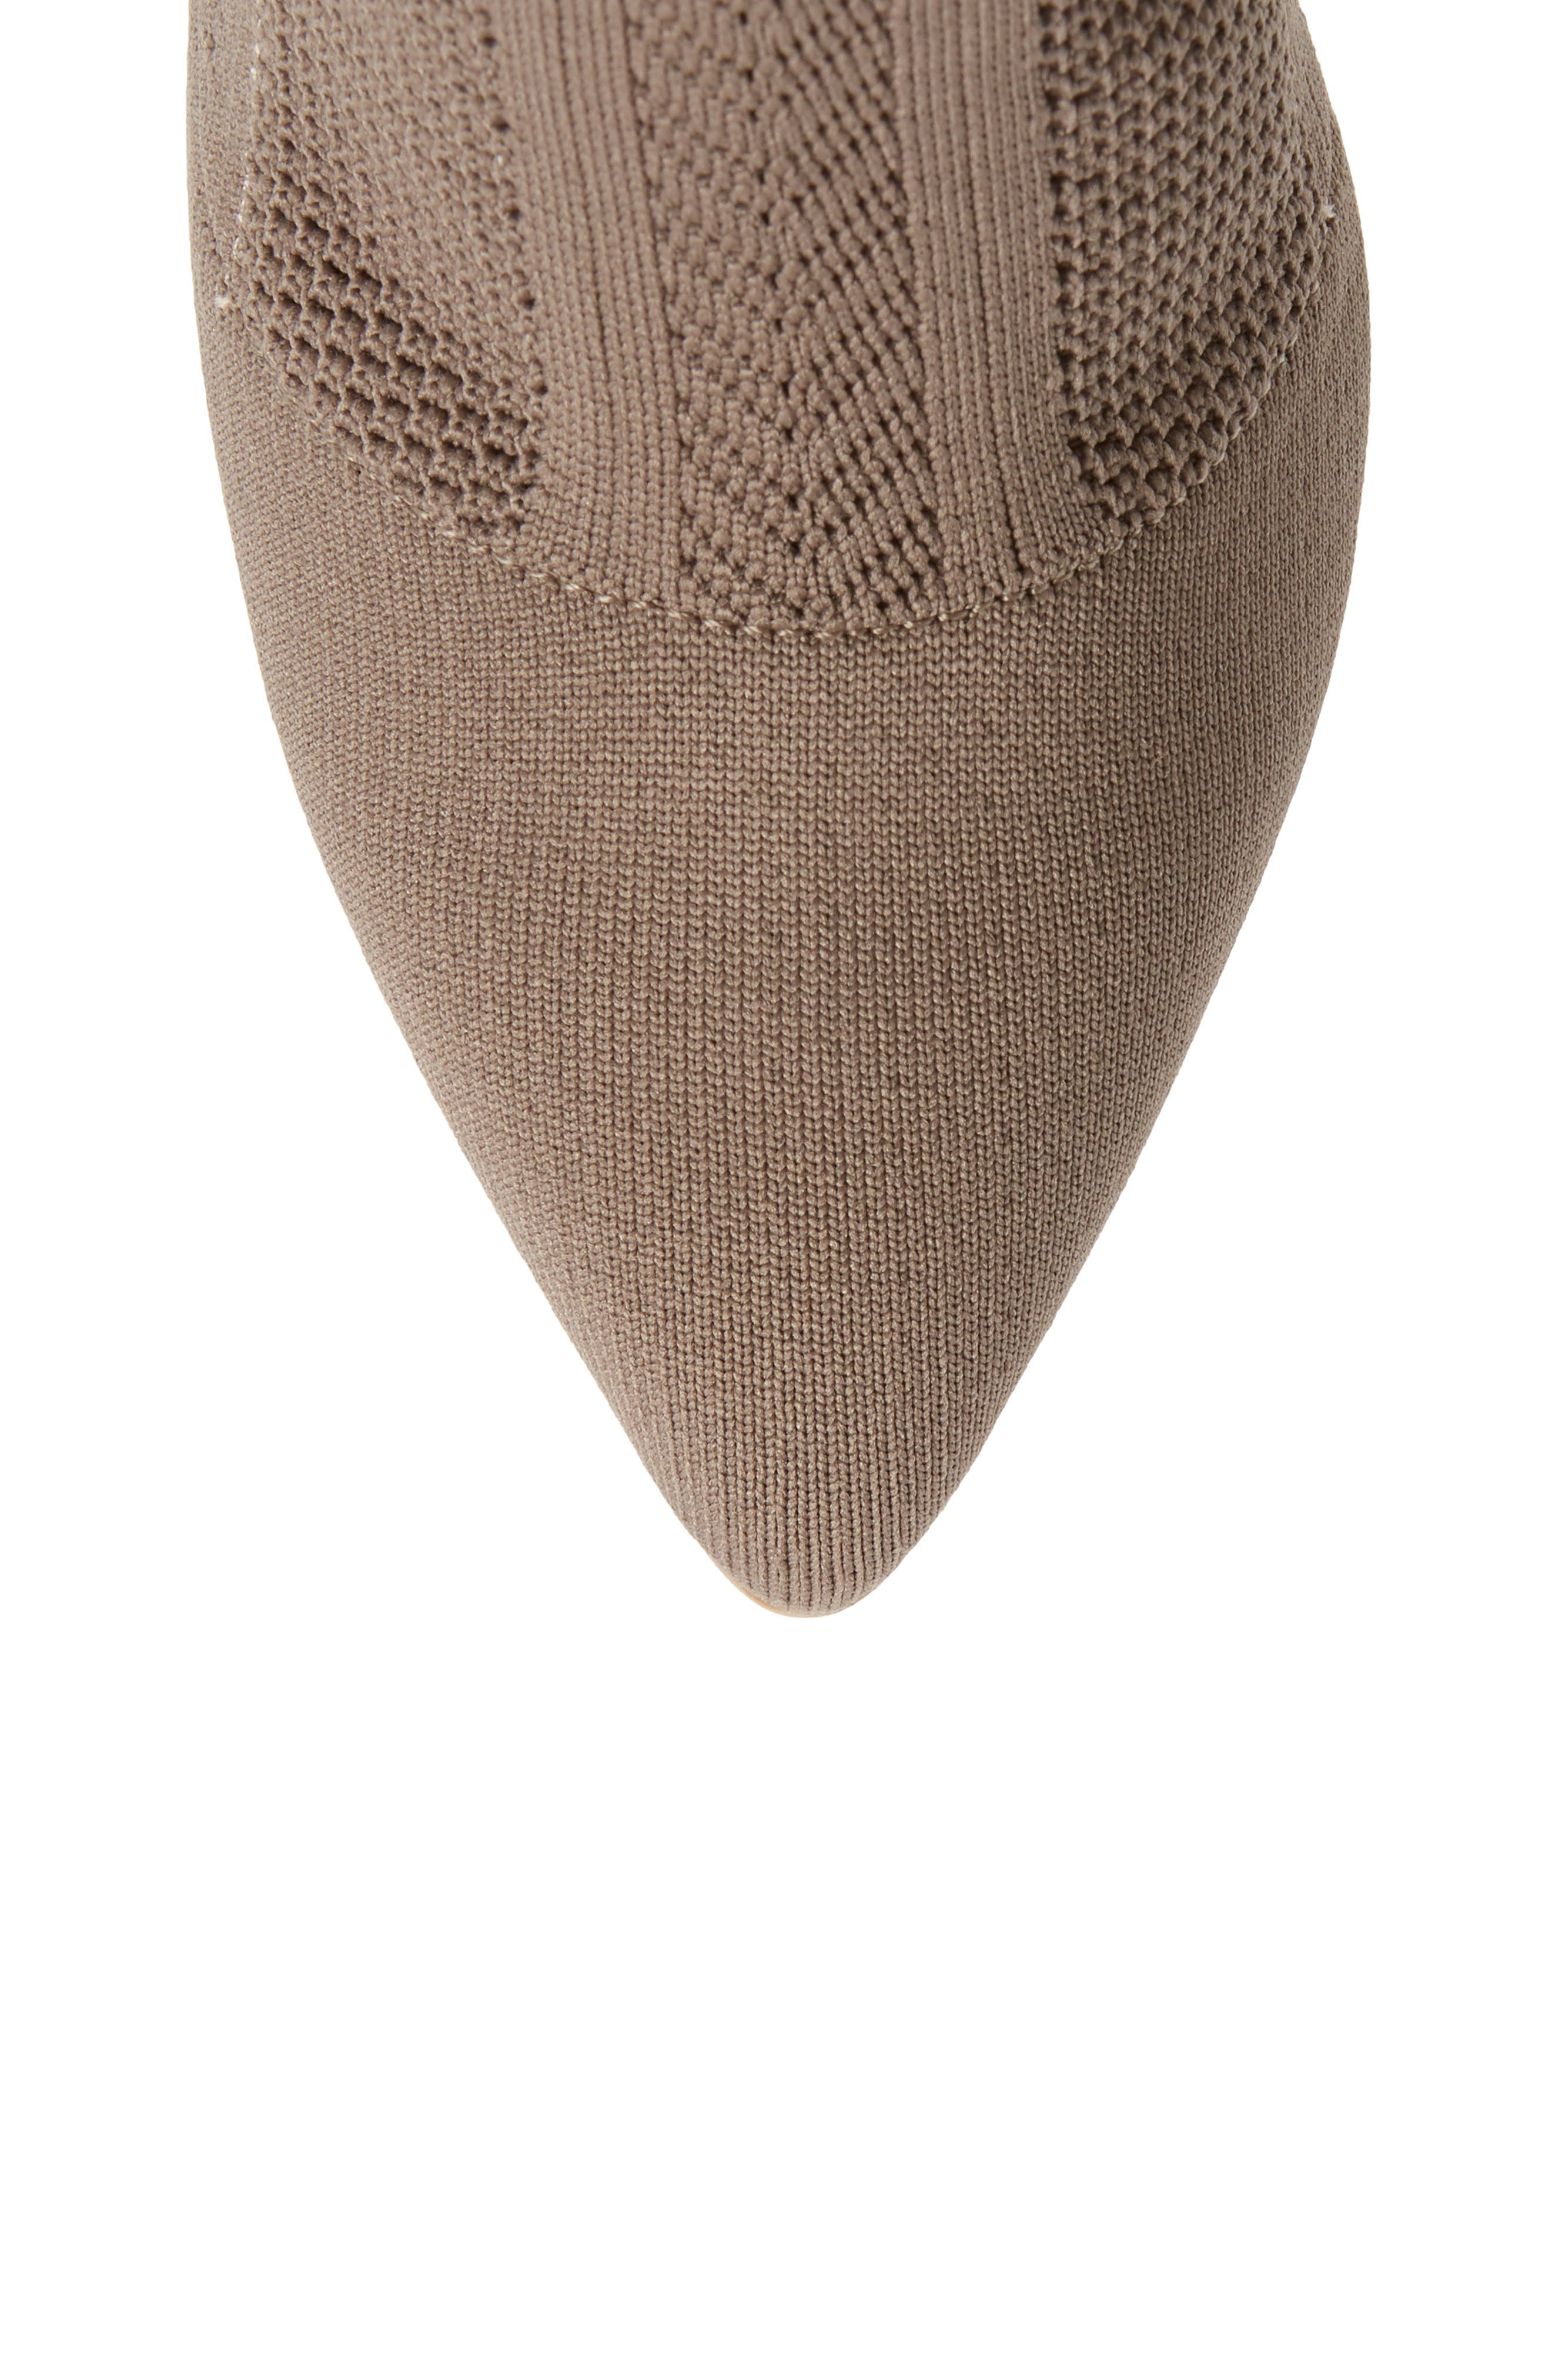 Davis Knit Boot,                             Alternate thumbnail 5, color,                             TAUPE FABRIC